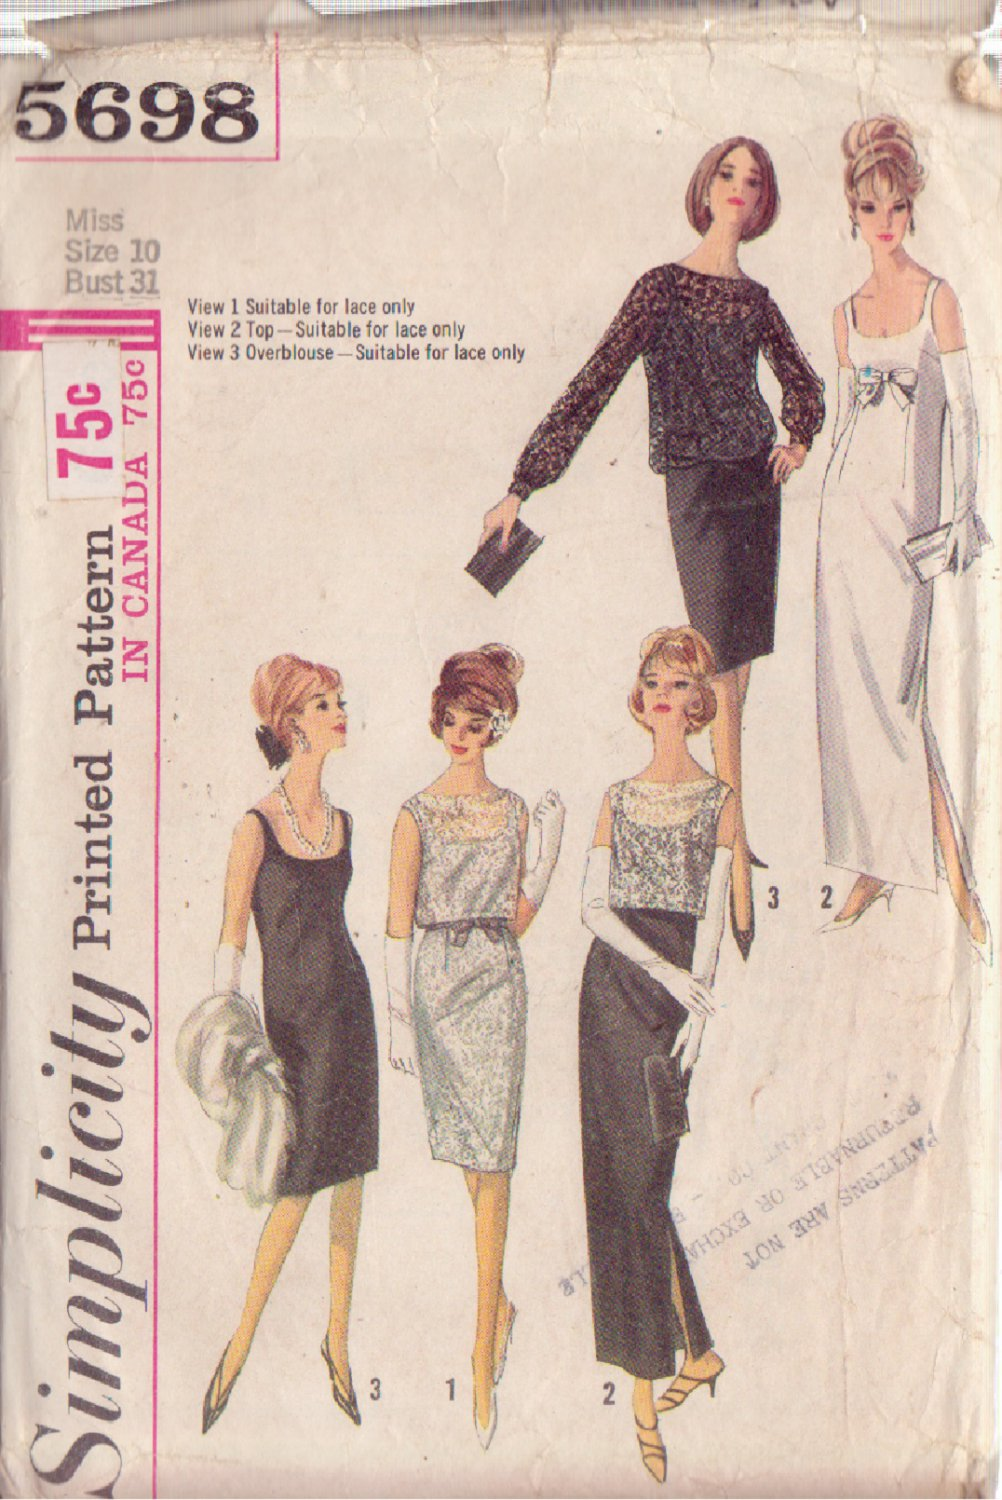 SIMPLICITY VINTAGE PATTERN 5698 MISSES' EVENING, COCKTAIL DRESS WITH OVERBLOUSE AND TOP SIZE 10